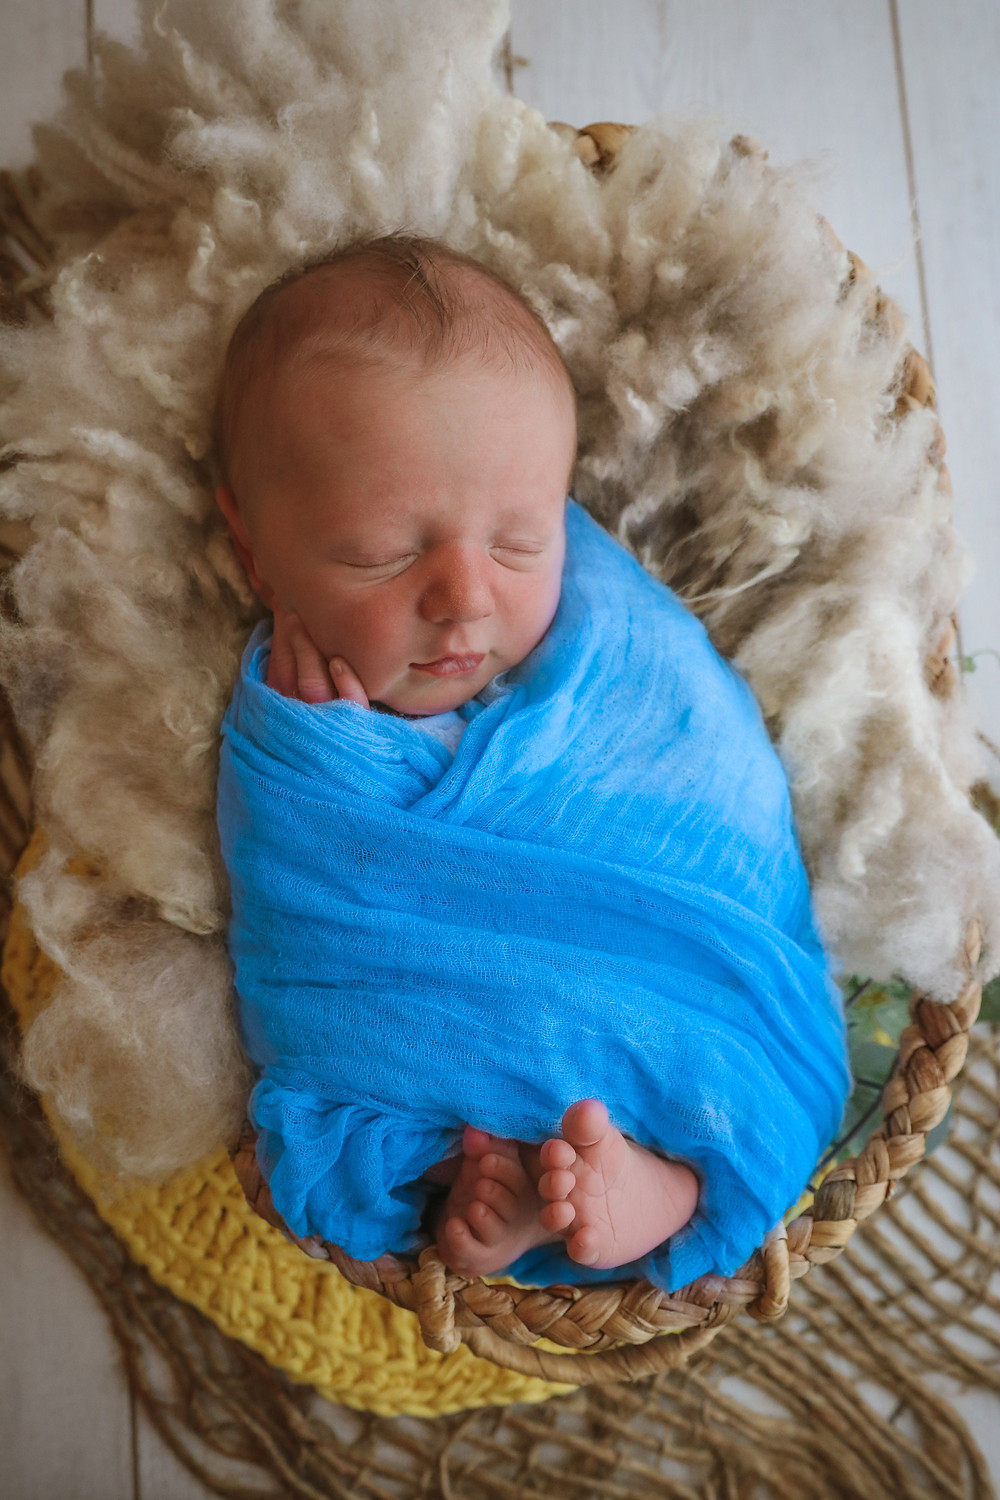 sleeping newborn wrapped in bright blue laying in basket